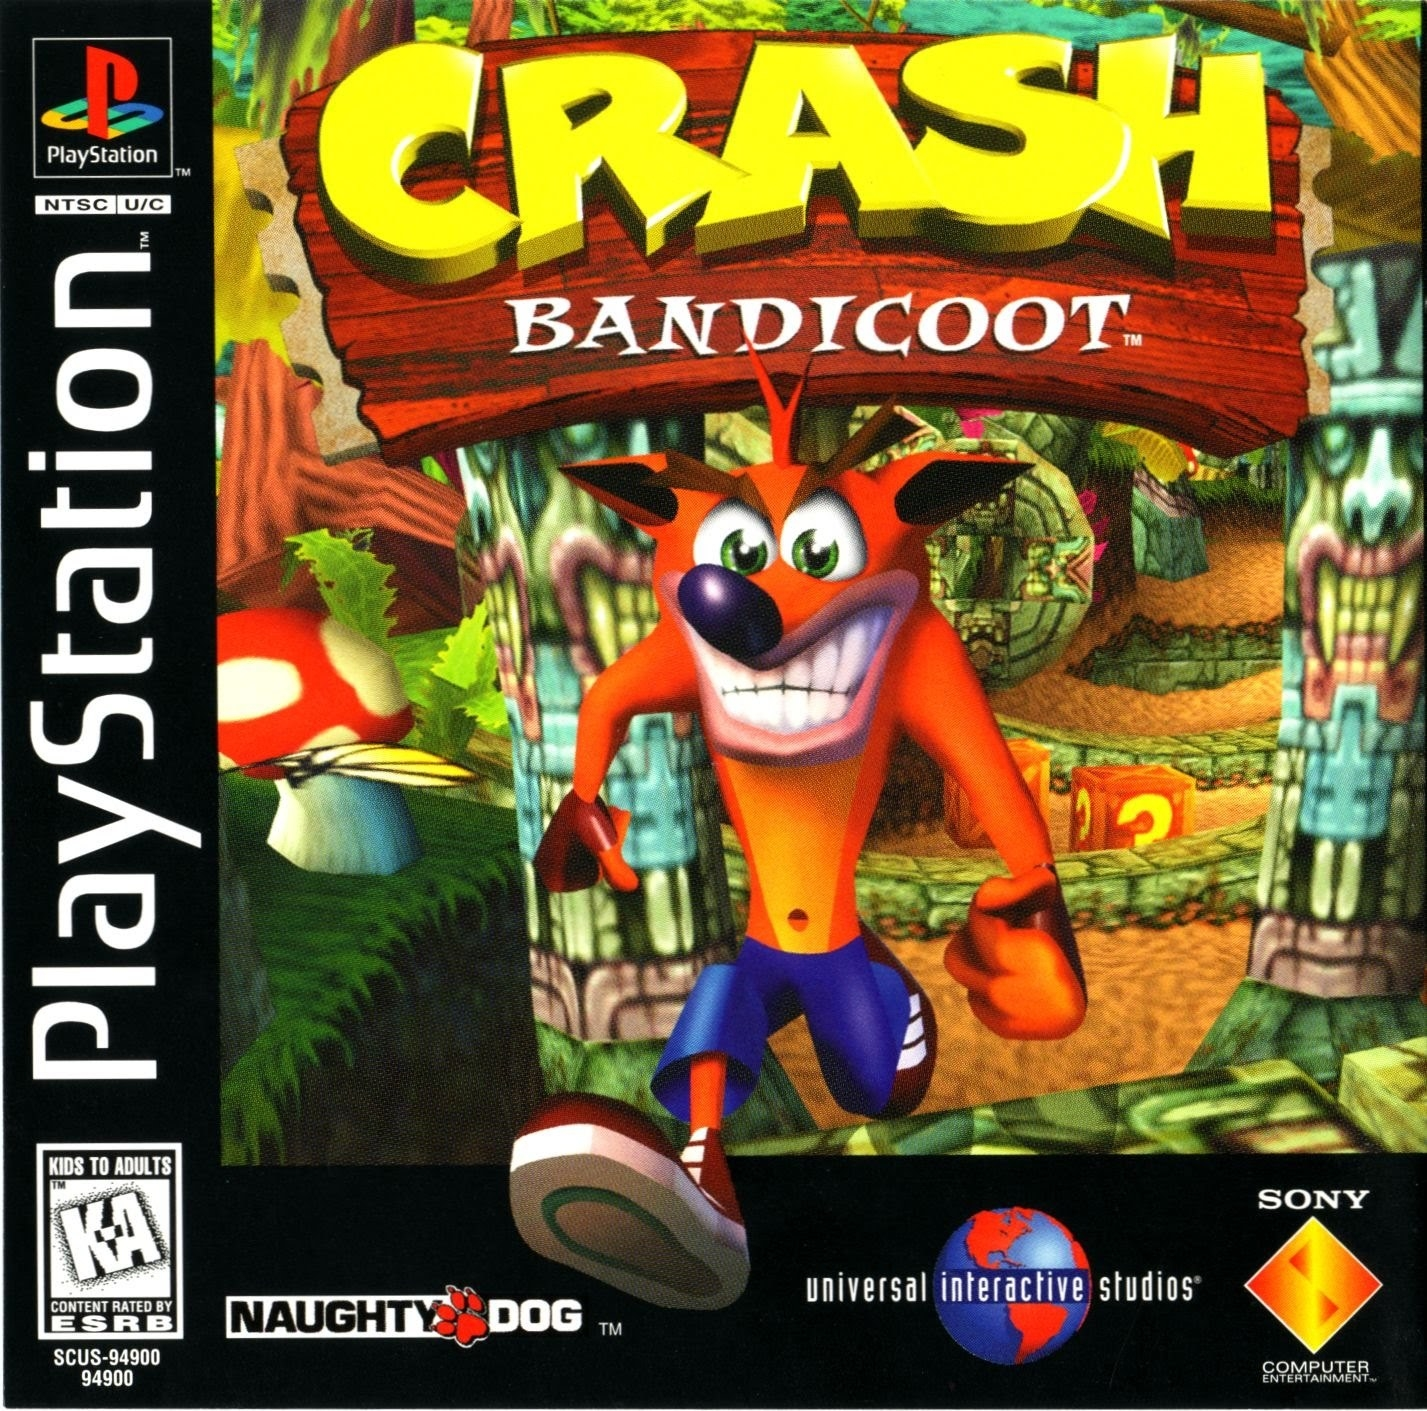 The Crash Bandicoot series